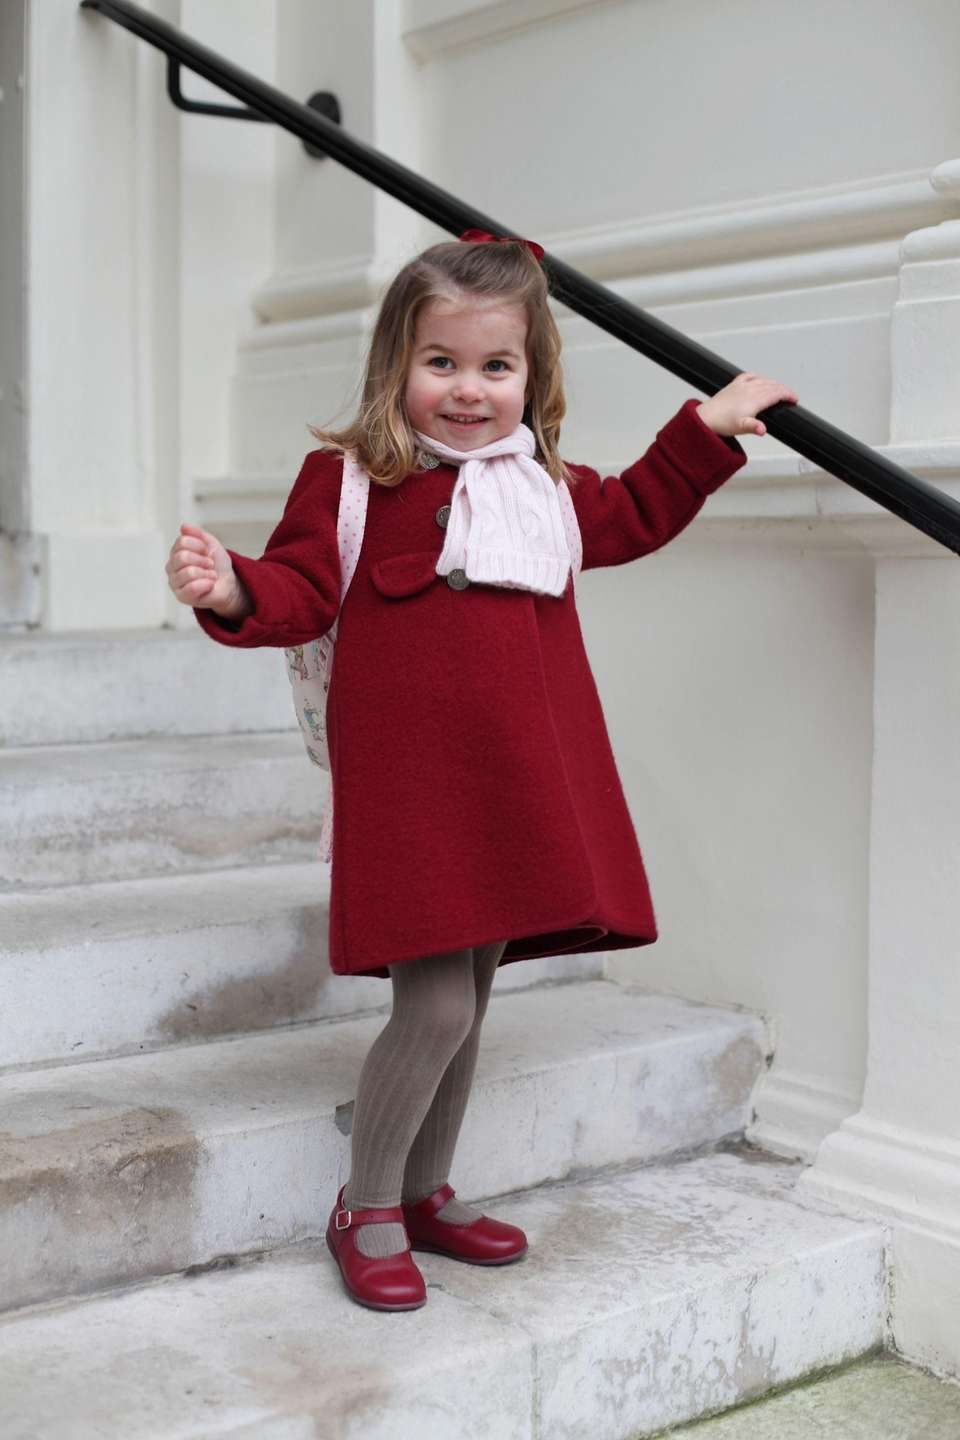 Princess Charlotte poses at Kensington Palace shortly before